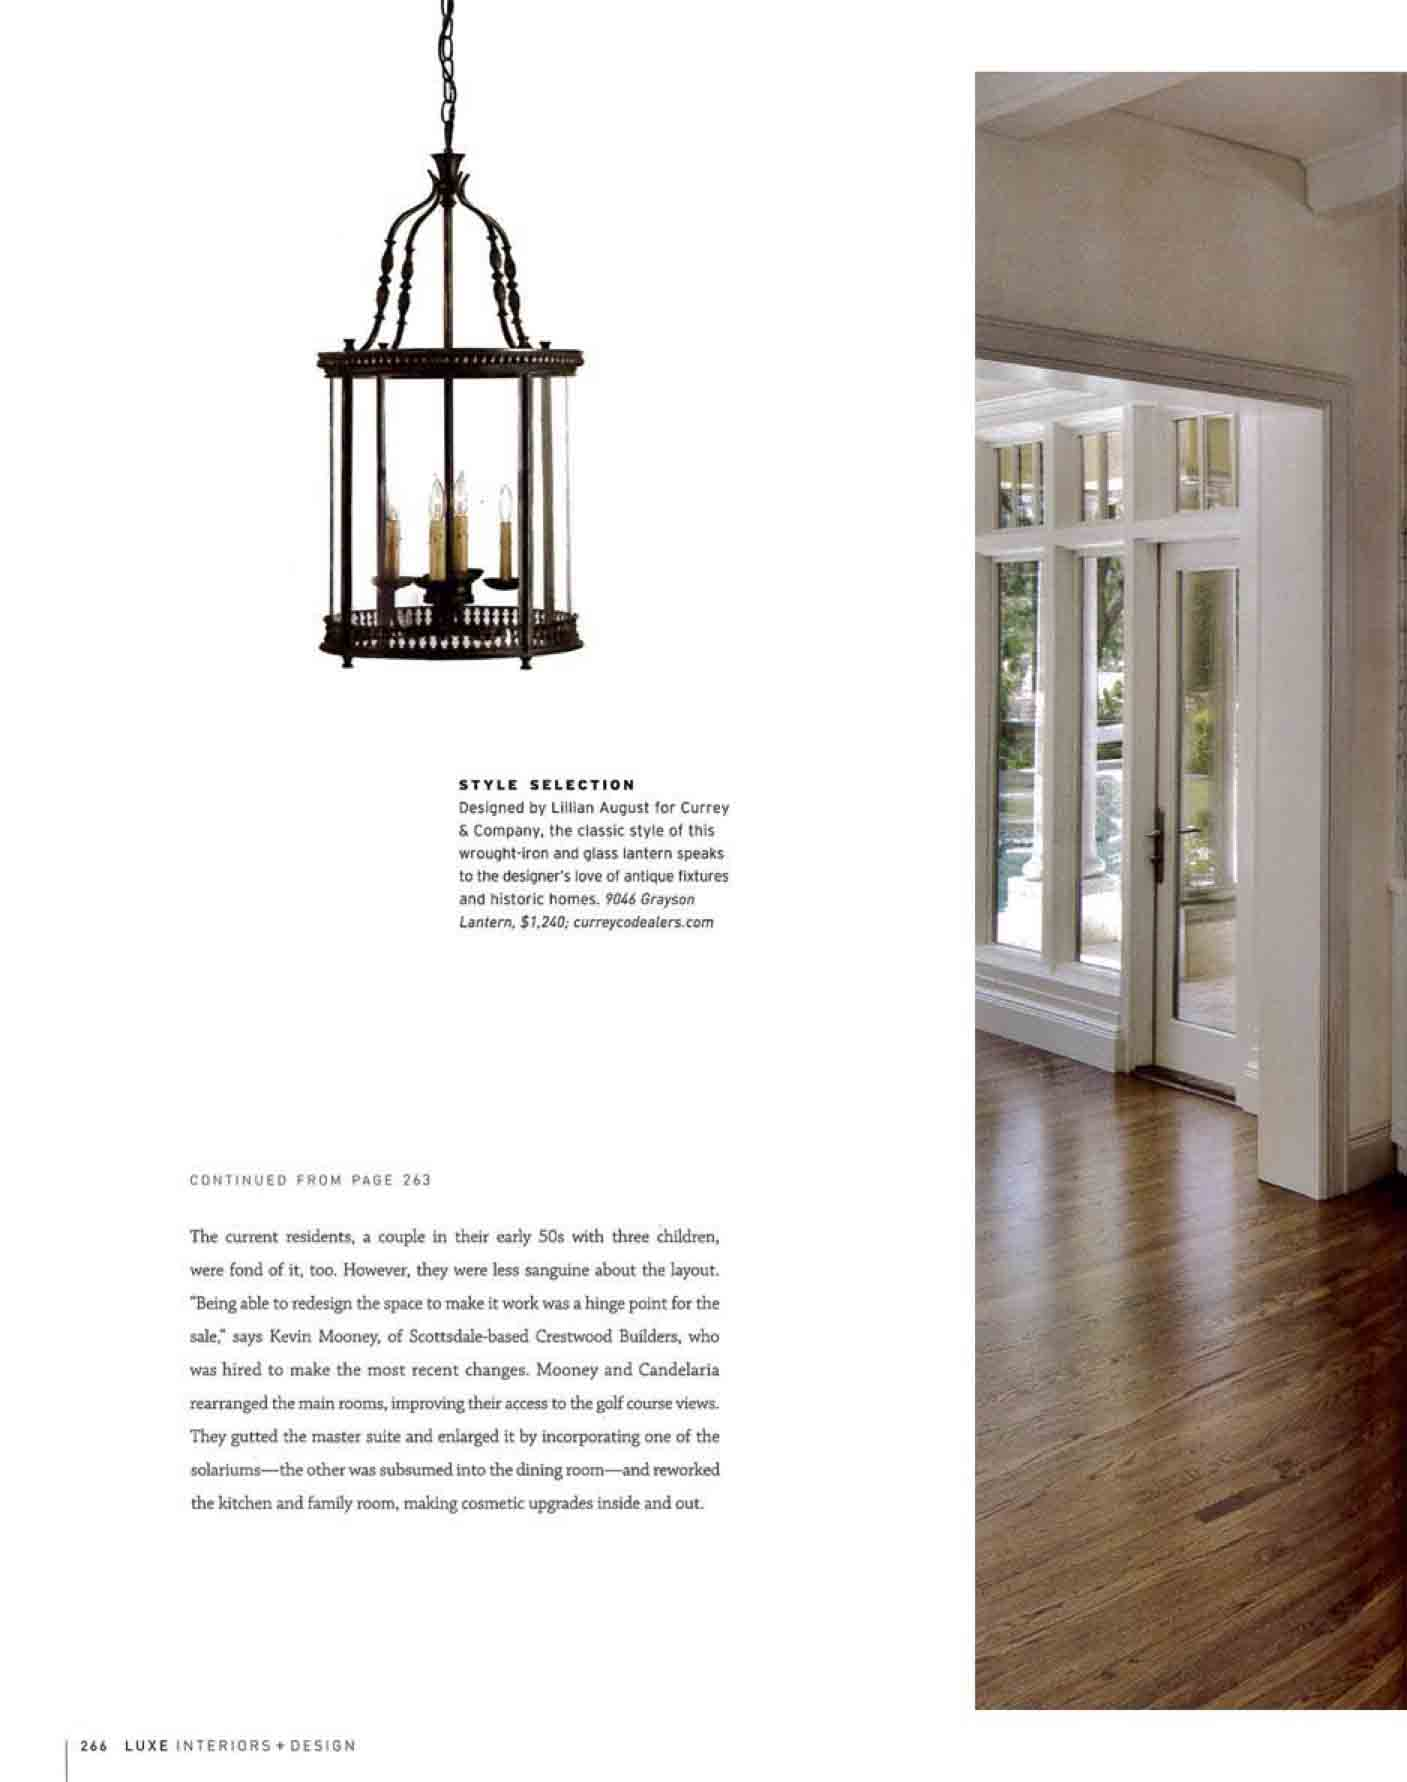 7 glass lantern and dining table 1 72.jpg